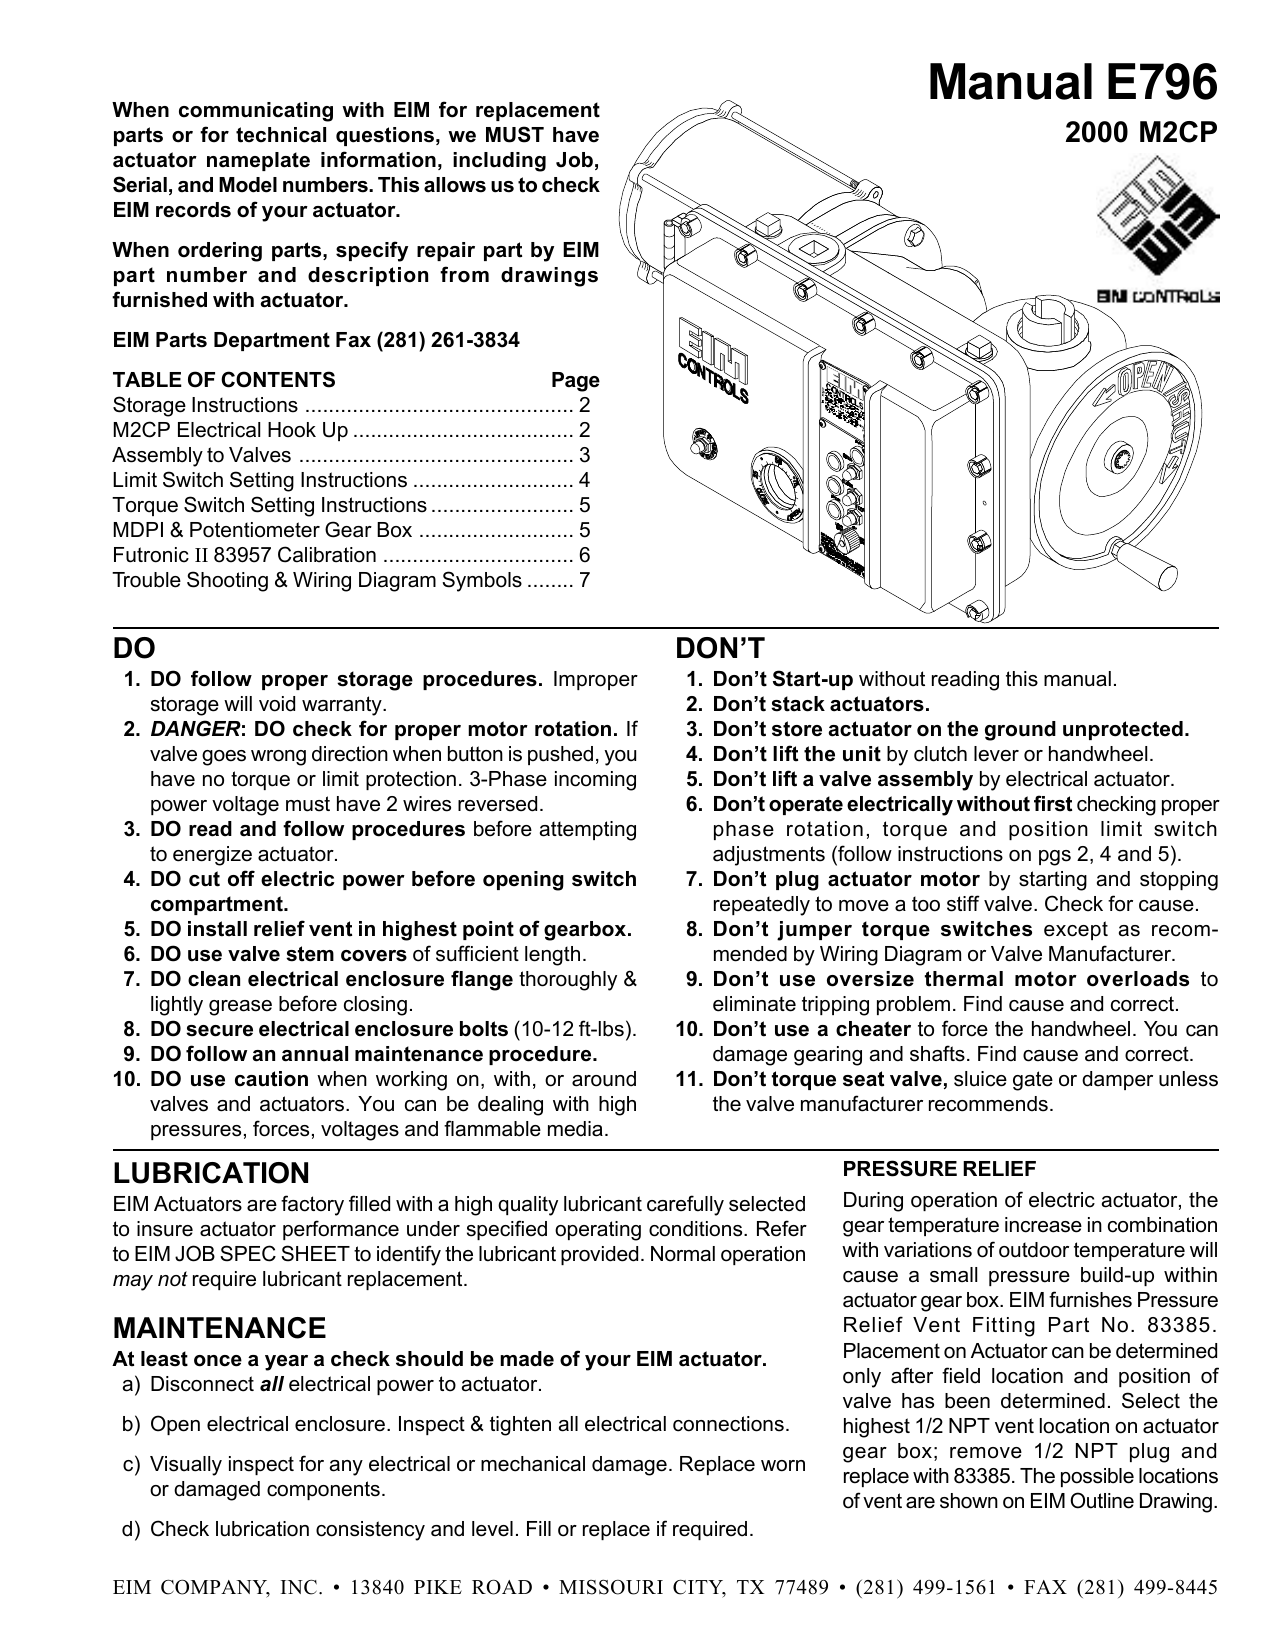 018642467_1 d6a38c79dbcedaa4a2705c4193dee3a5 series 2000 m2cp emerson process management eim actuator wiring diagram at crackthecode.co